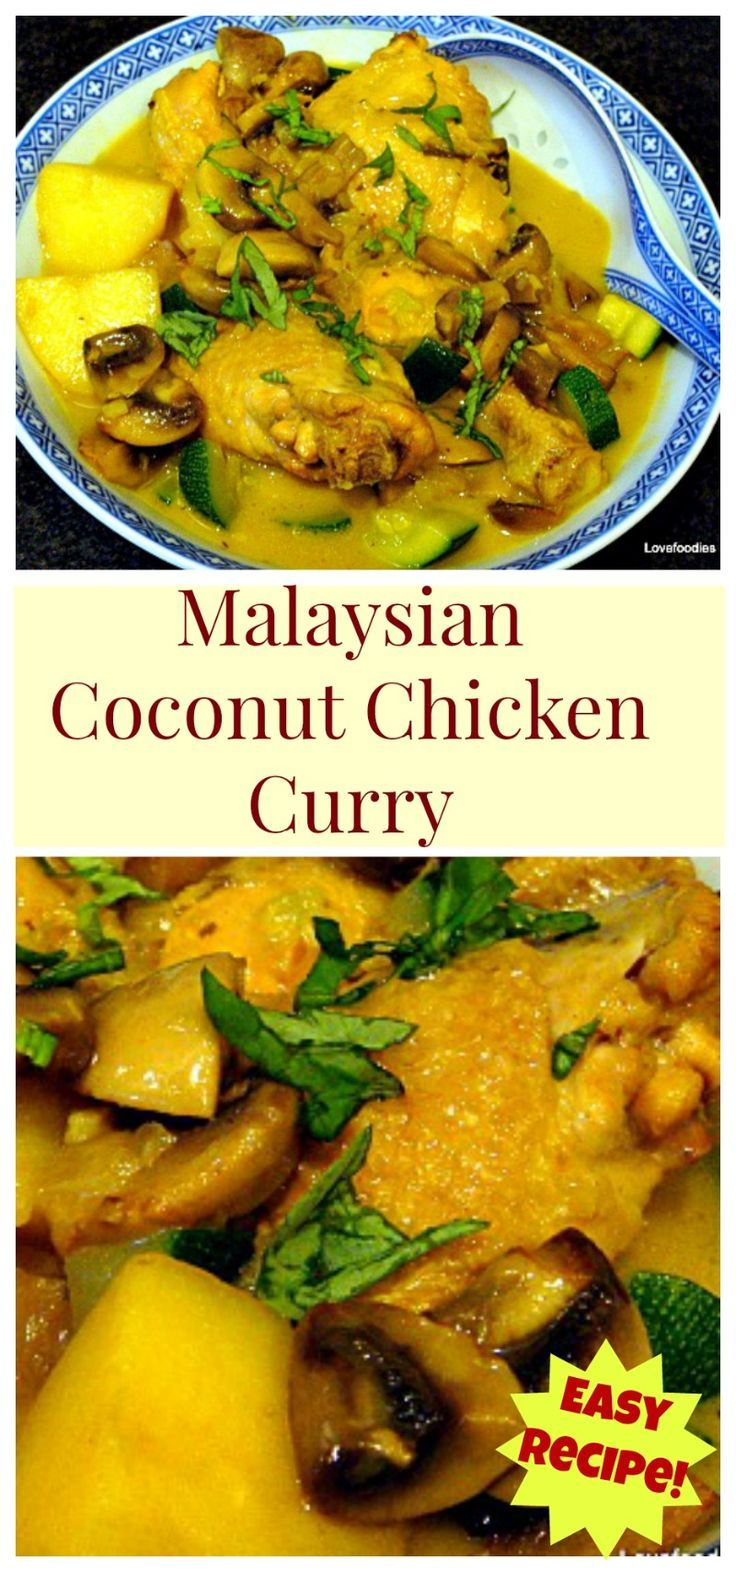 Cheats Malaysian Coconut Chicken & Potato Curry - Easy no fuss dinner and goes great with some rice or naan breads. Yummy!